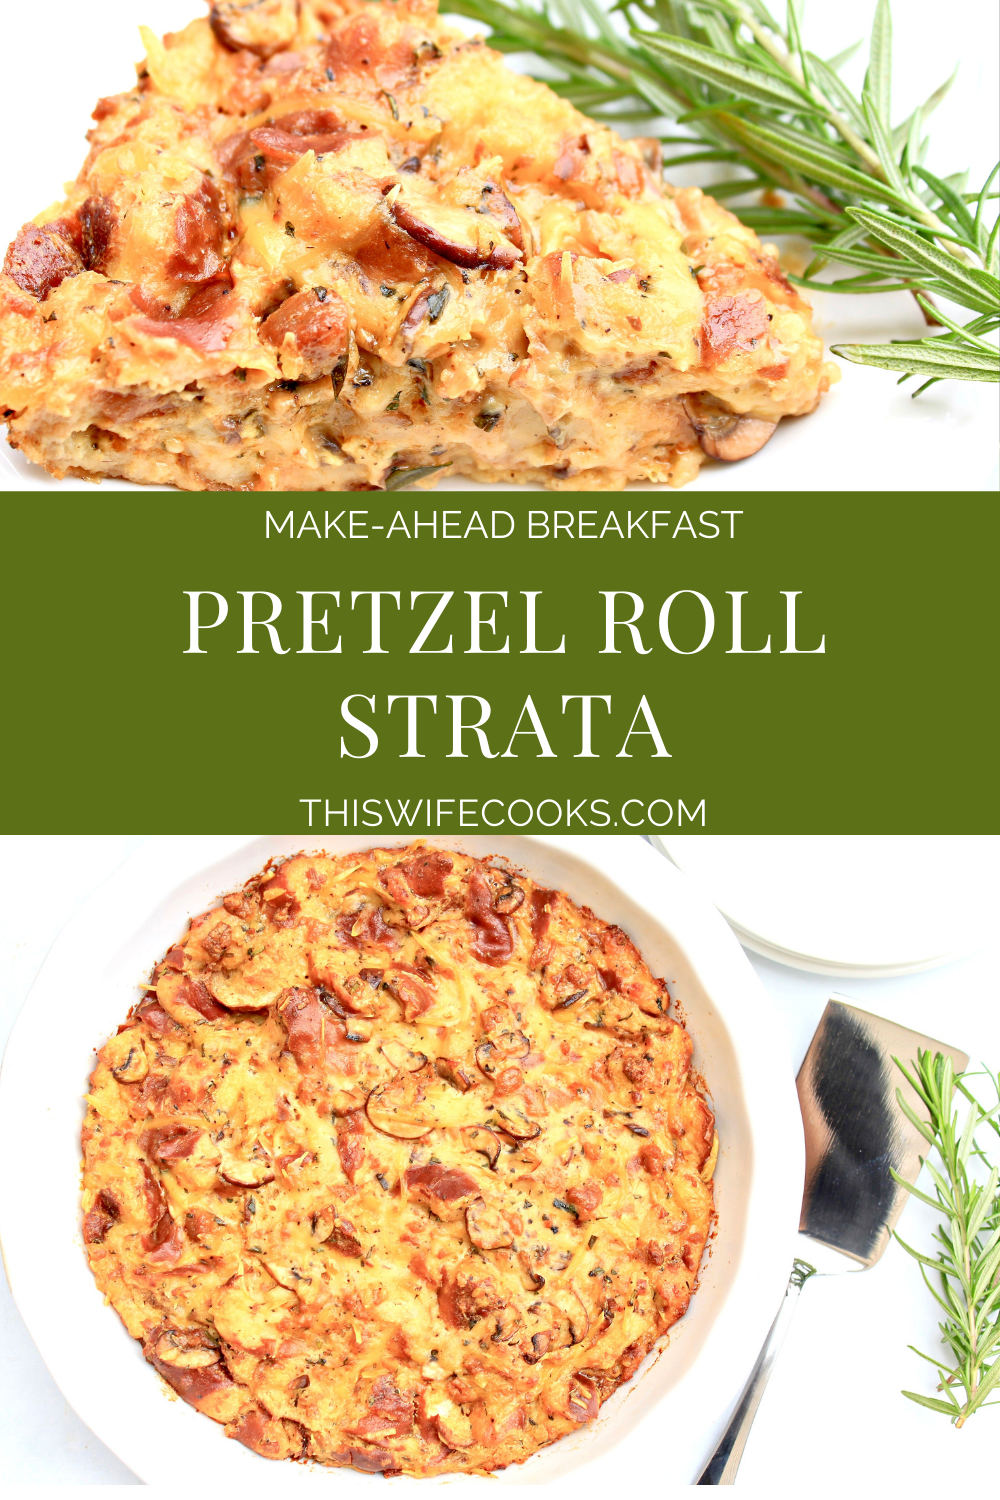 Pretzel Roll Strata ~ This easy, make-ahead casserole is perfect for a weekend breakfast or holiday brunch! Cubed pretzel roll bread is combined with plant-based sausage, onions, mushrooms, garlic, fresh herbs, and vegan cheese then baked to savory perfection in creamy dairy-free custard.  via @thiswifecooks